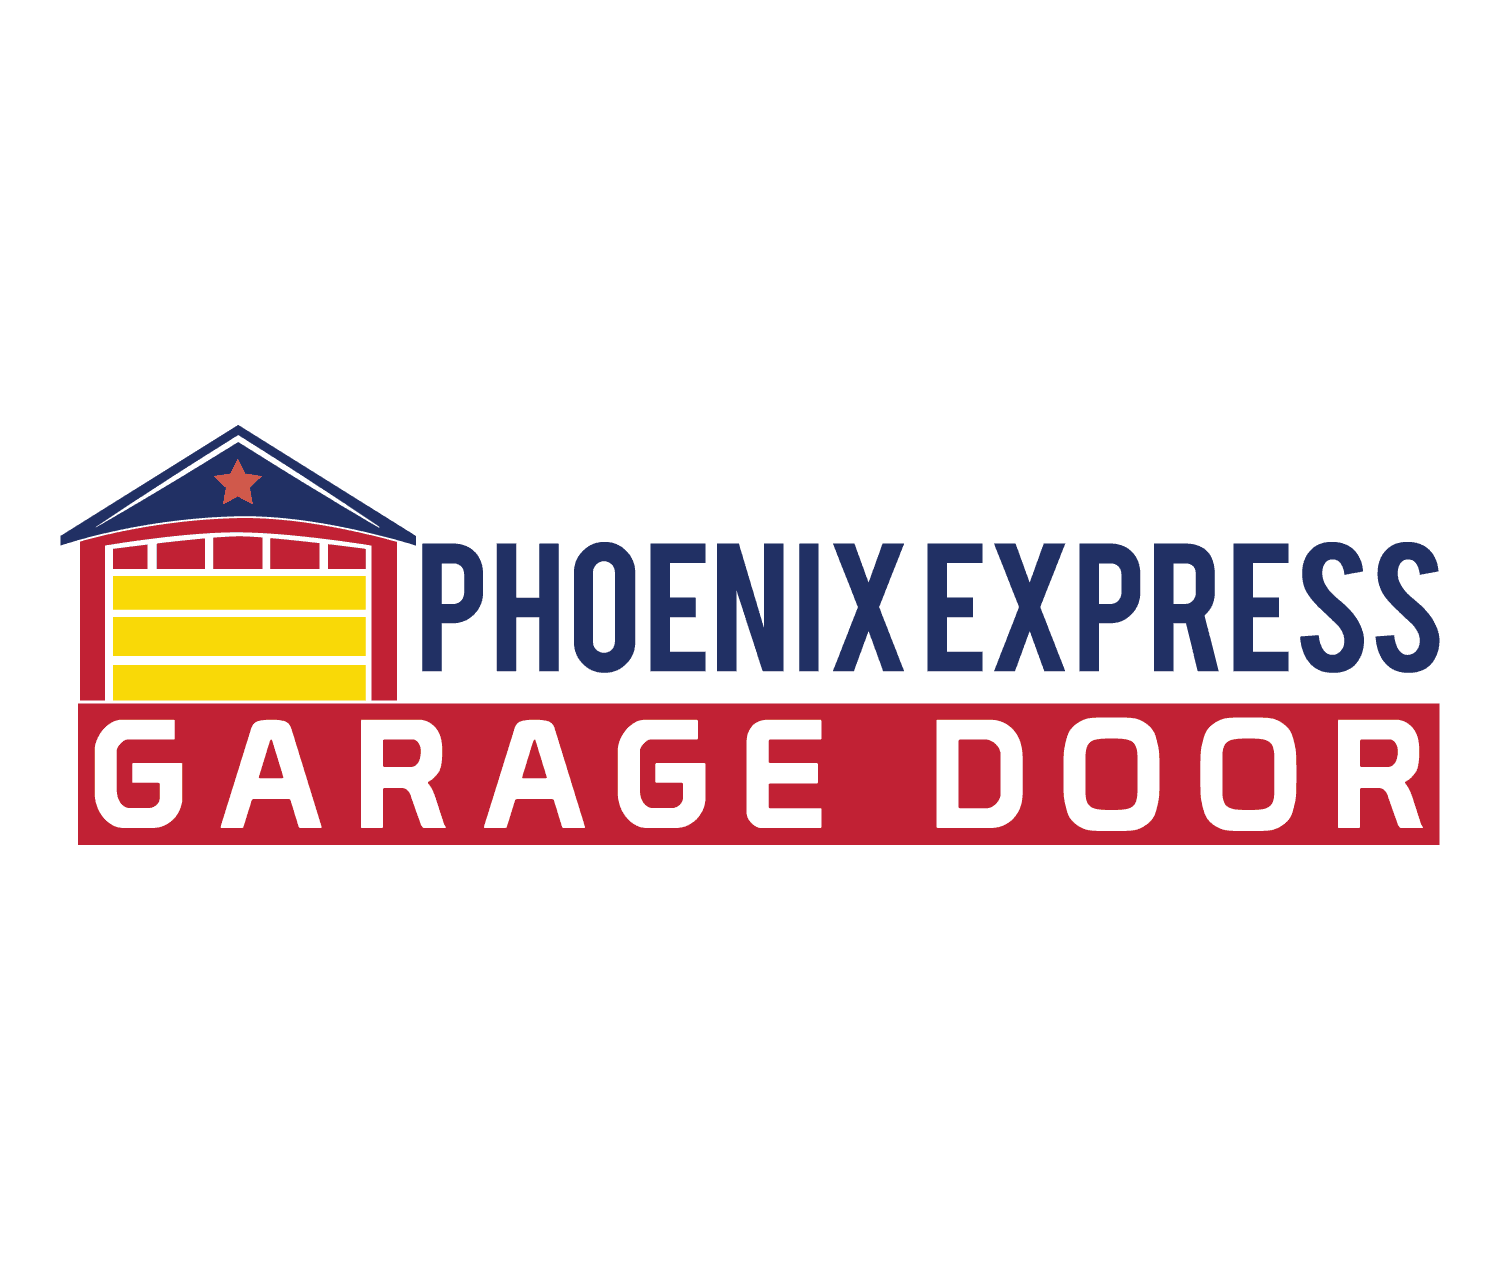 repair colorado g denver phoenix garage in installation new doors door giant